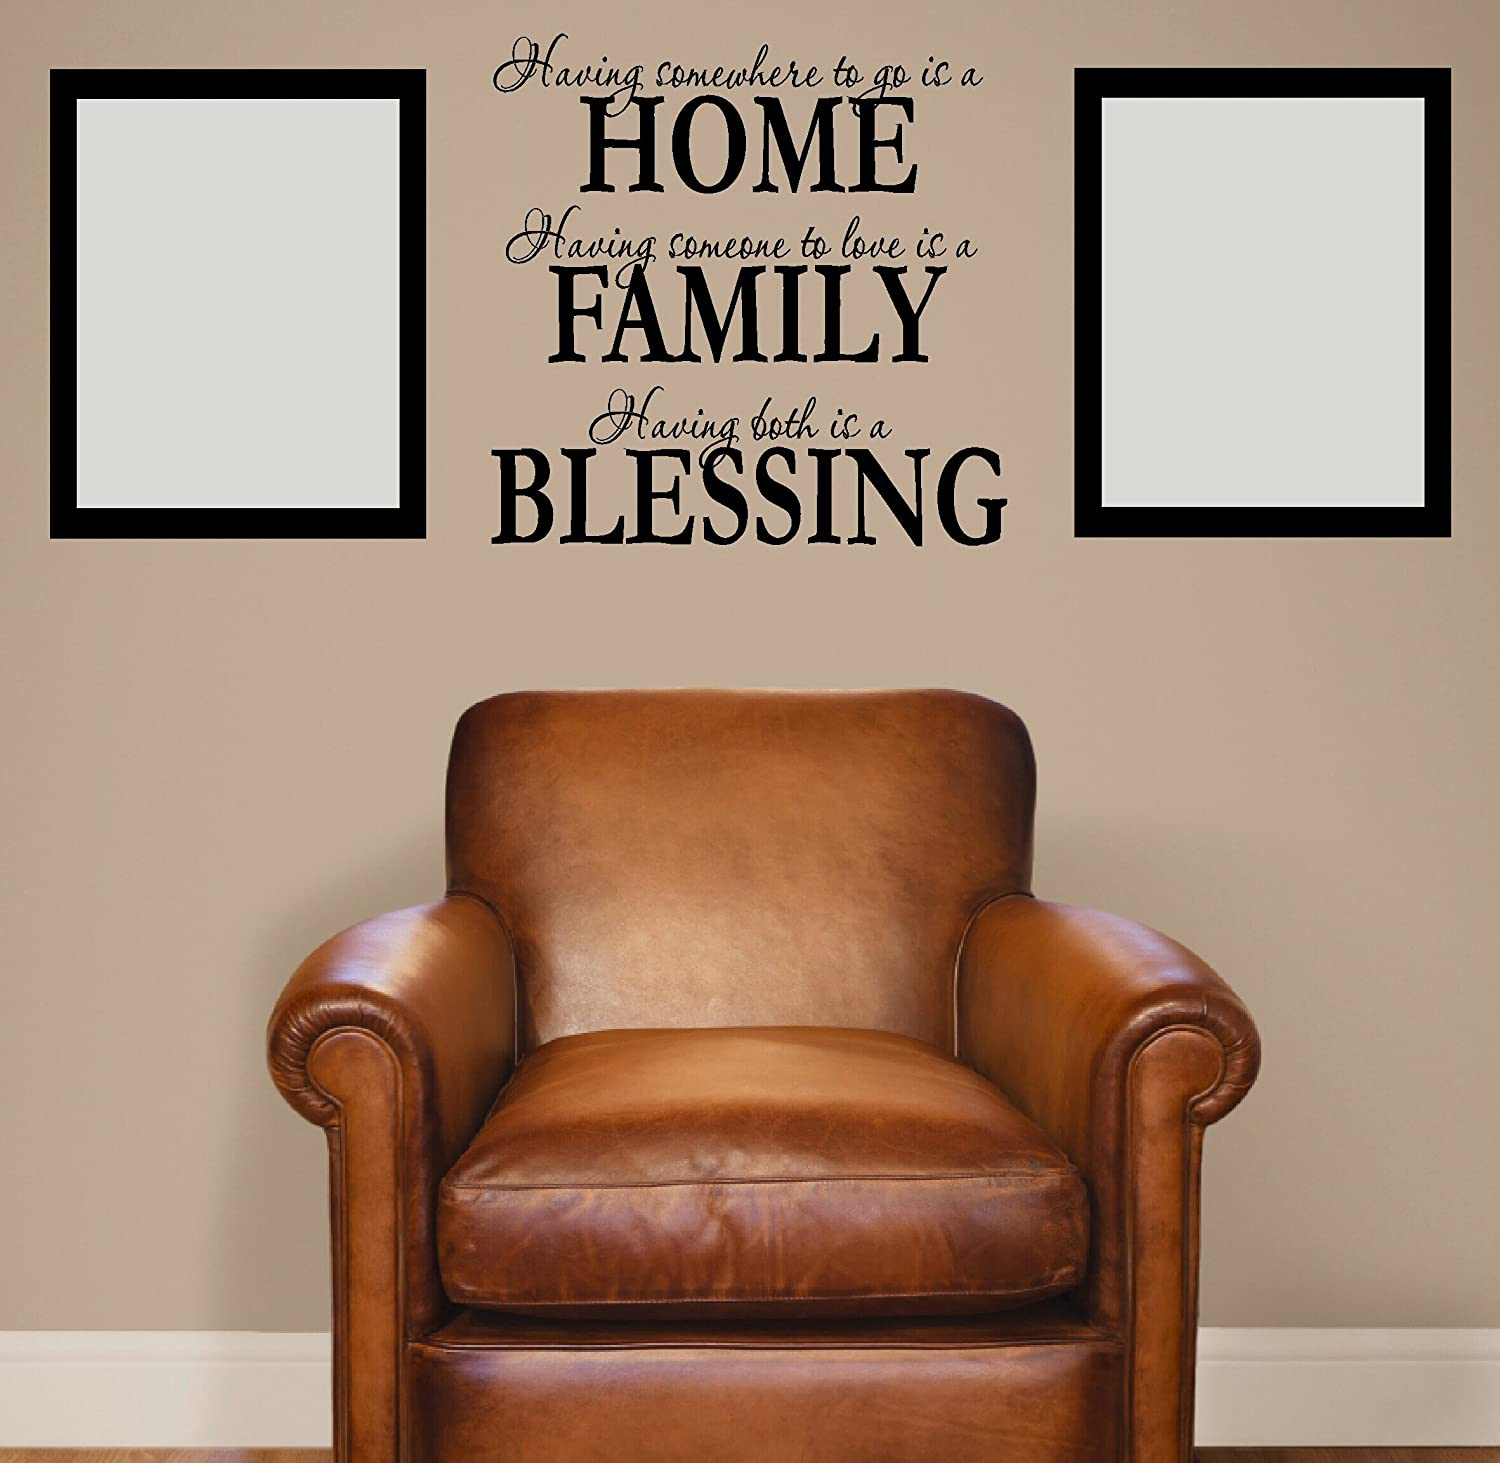 Wht Wall D/écor Plus More WDPM1200 Having. 23W by 23H White Wall Decor Plus More FA007 23x23 Home Love Having Both is a Blessing Wall Vinyl Sticker Decal